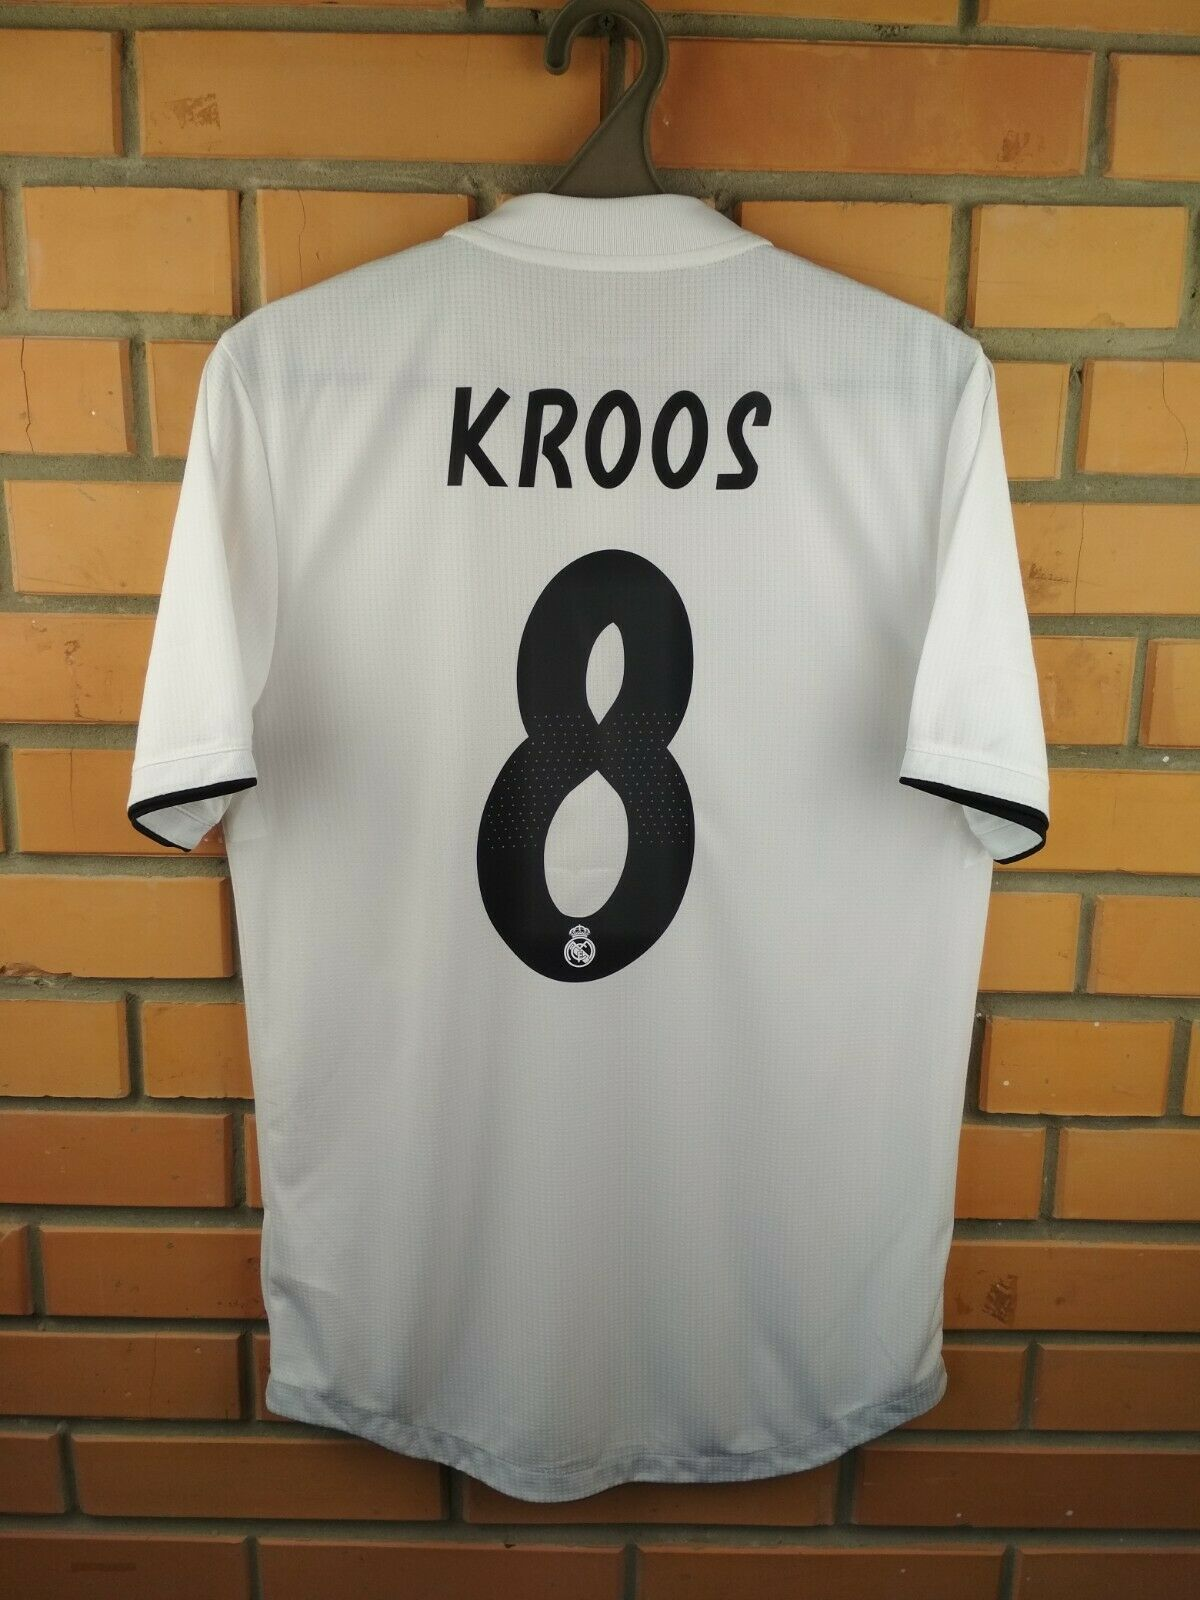 Kroos Real Madrid player issue jersey smtutti 2019 home shirt soccer CG0561 Adidas